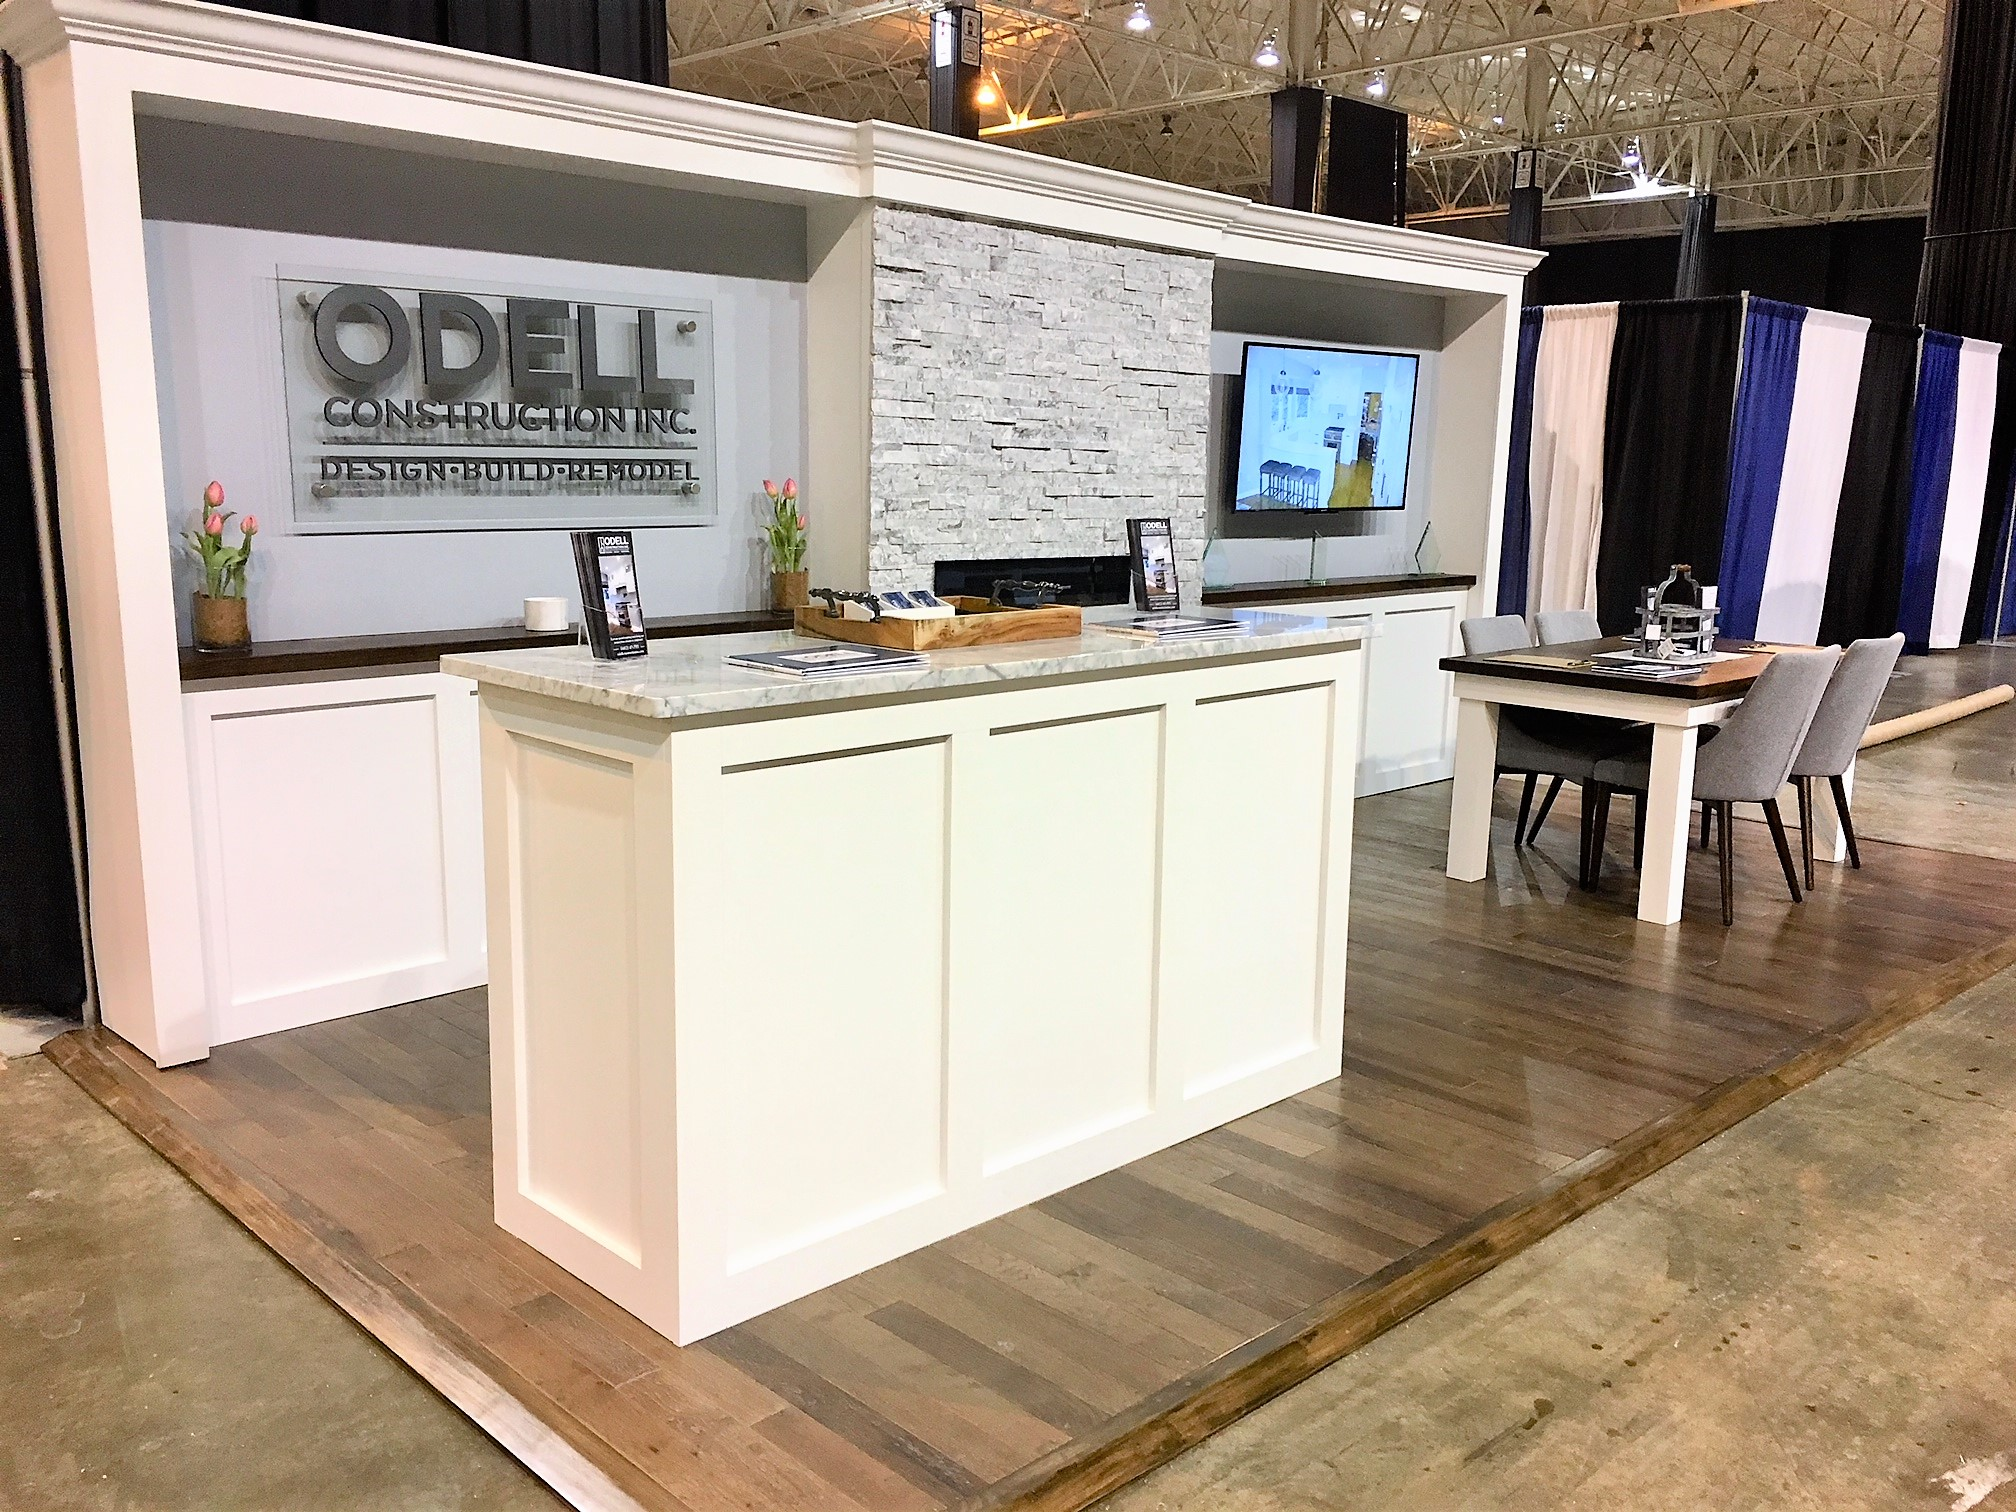 2018 nari home improvement show remodeling